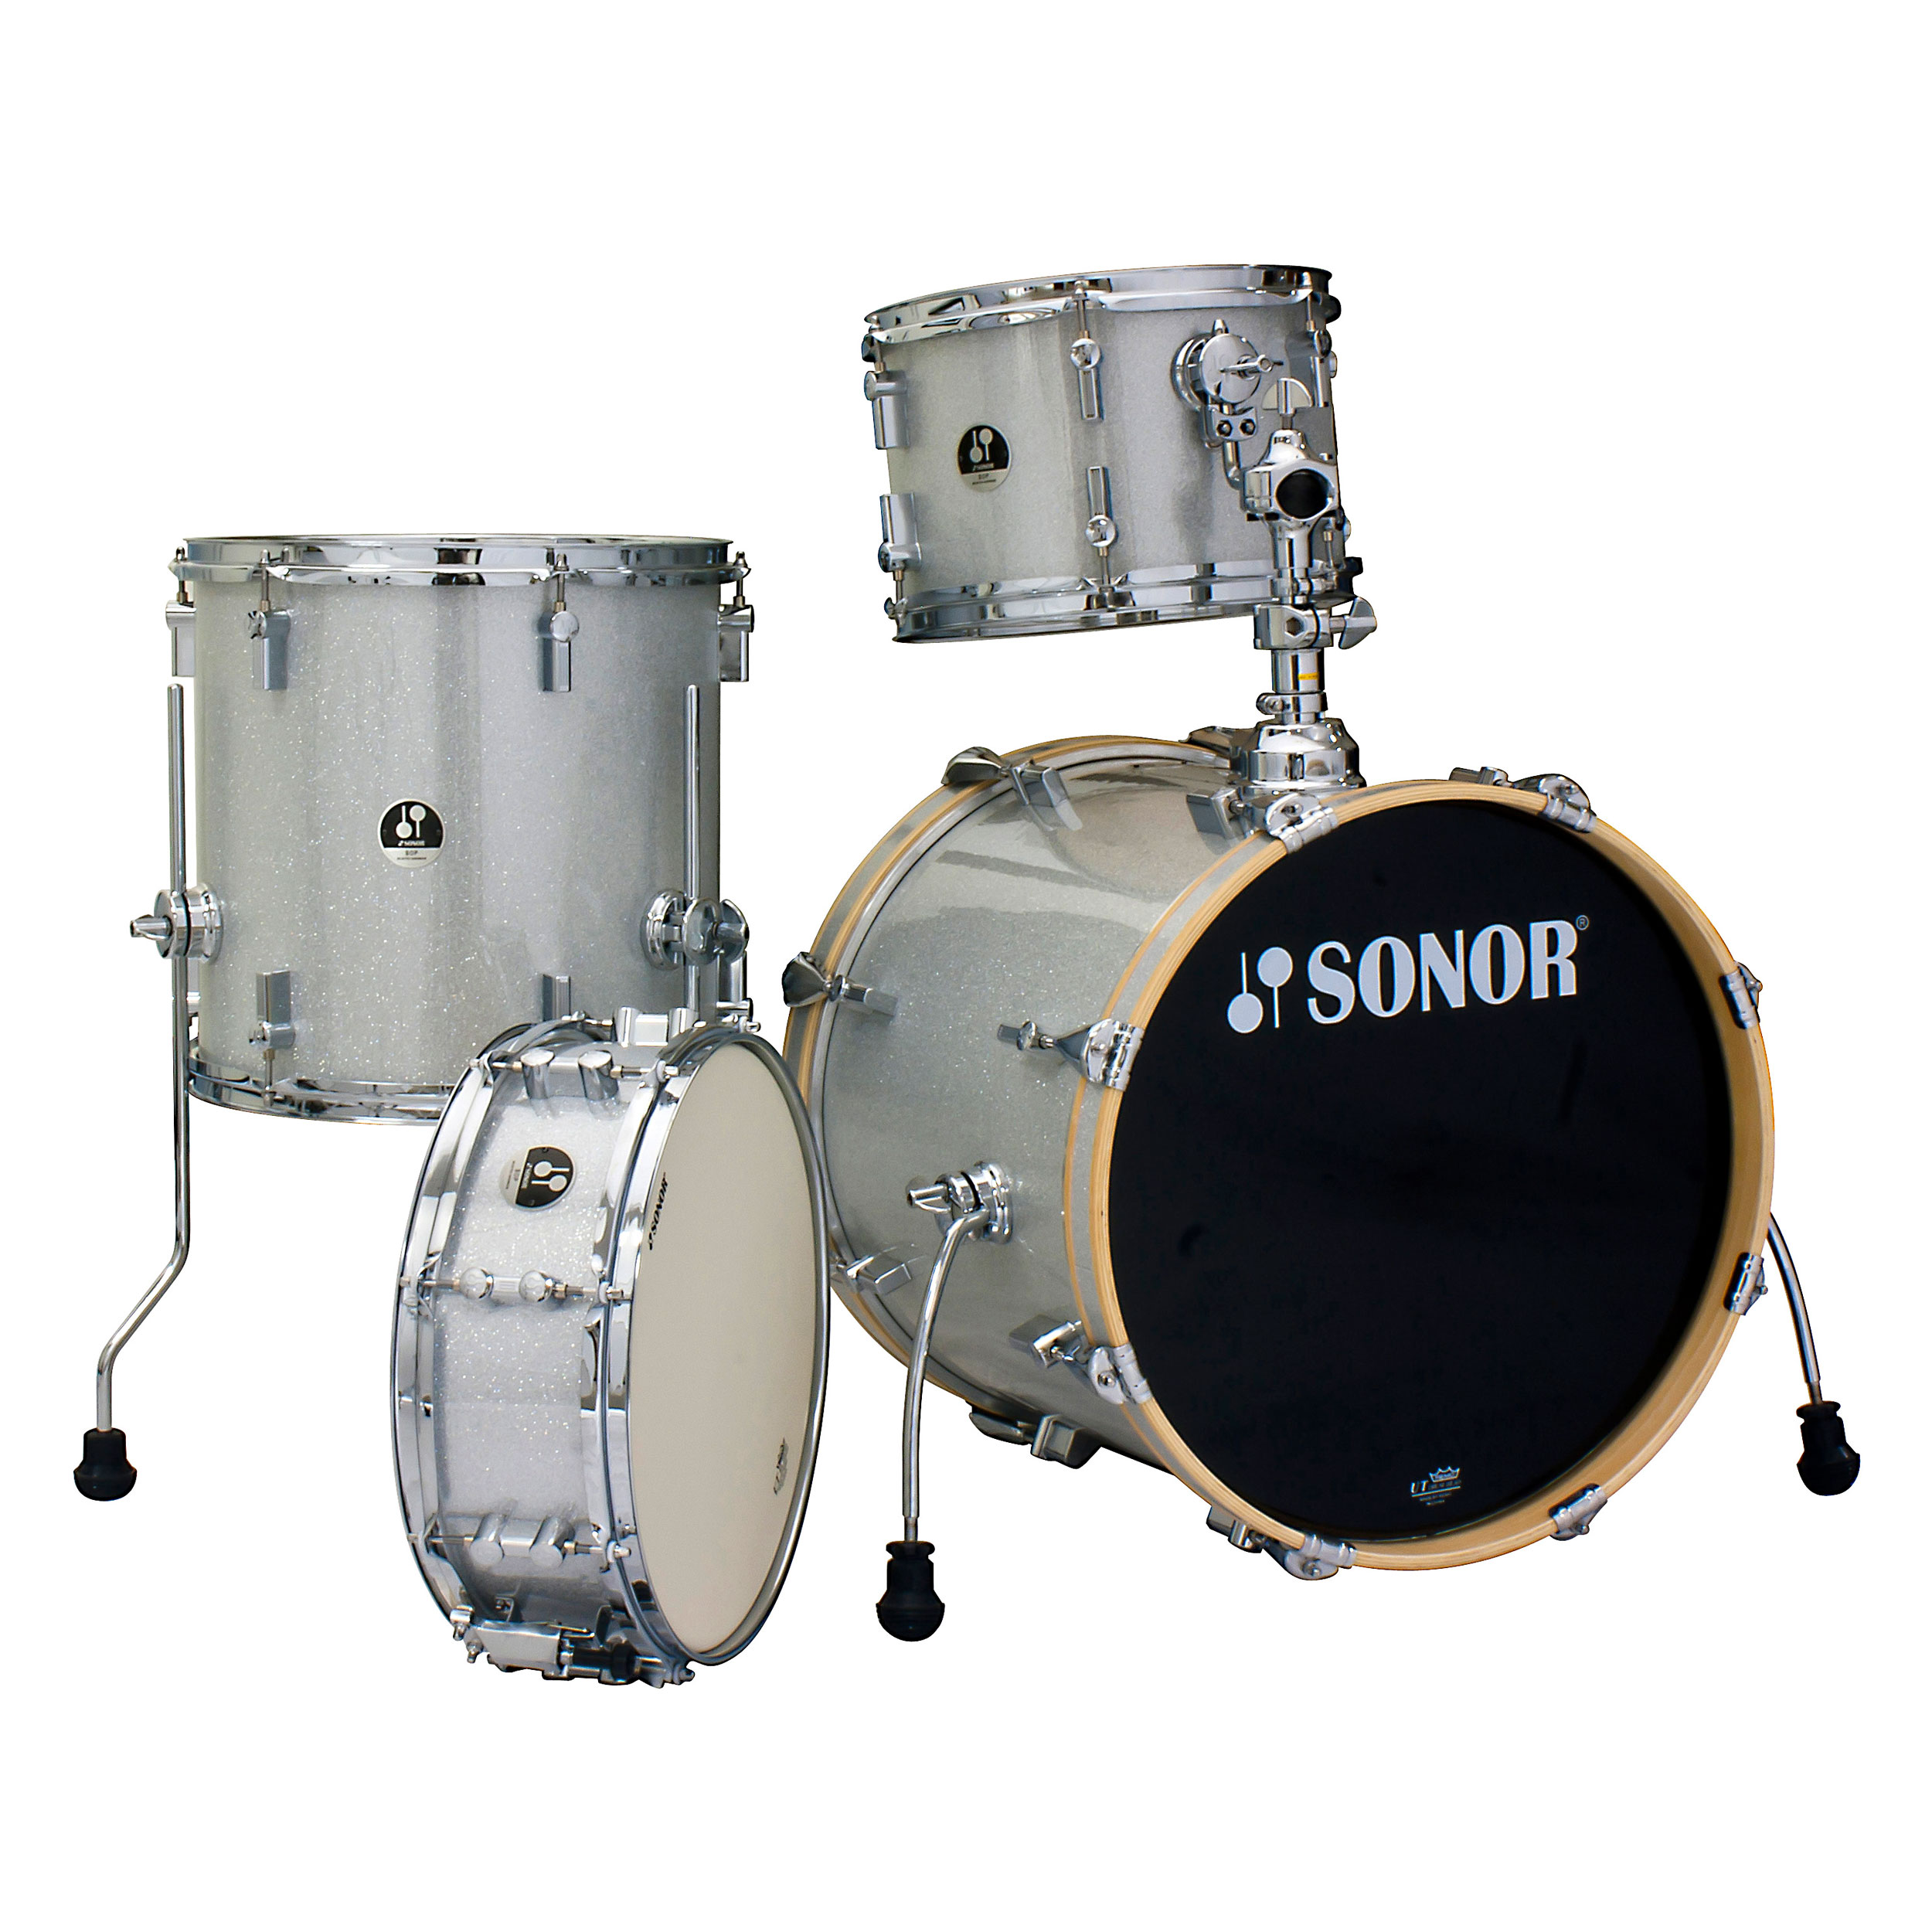 "Sonor Bop 4-Piece Drum Set Shell Pack (18"" Bass, 12/14"" Toms, 14"" Snare)"